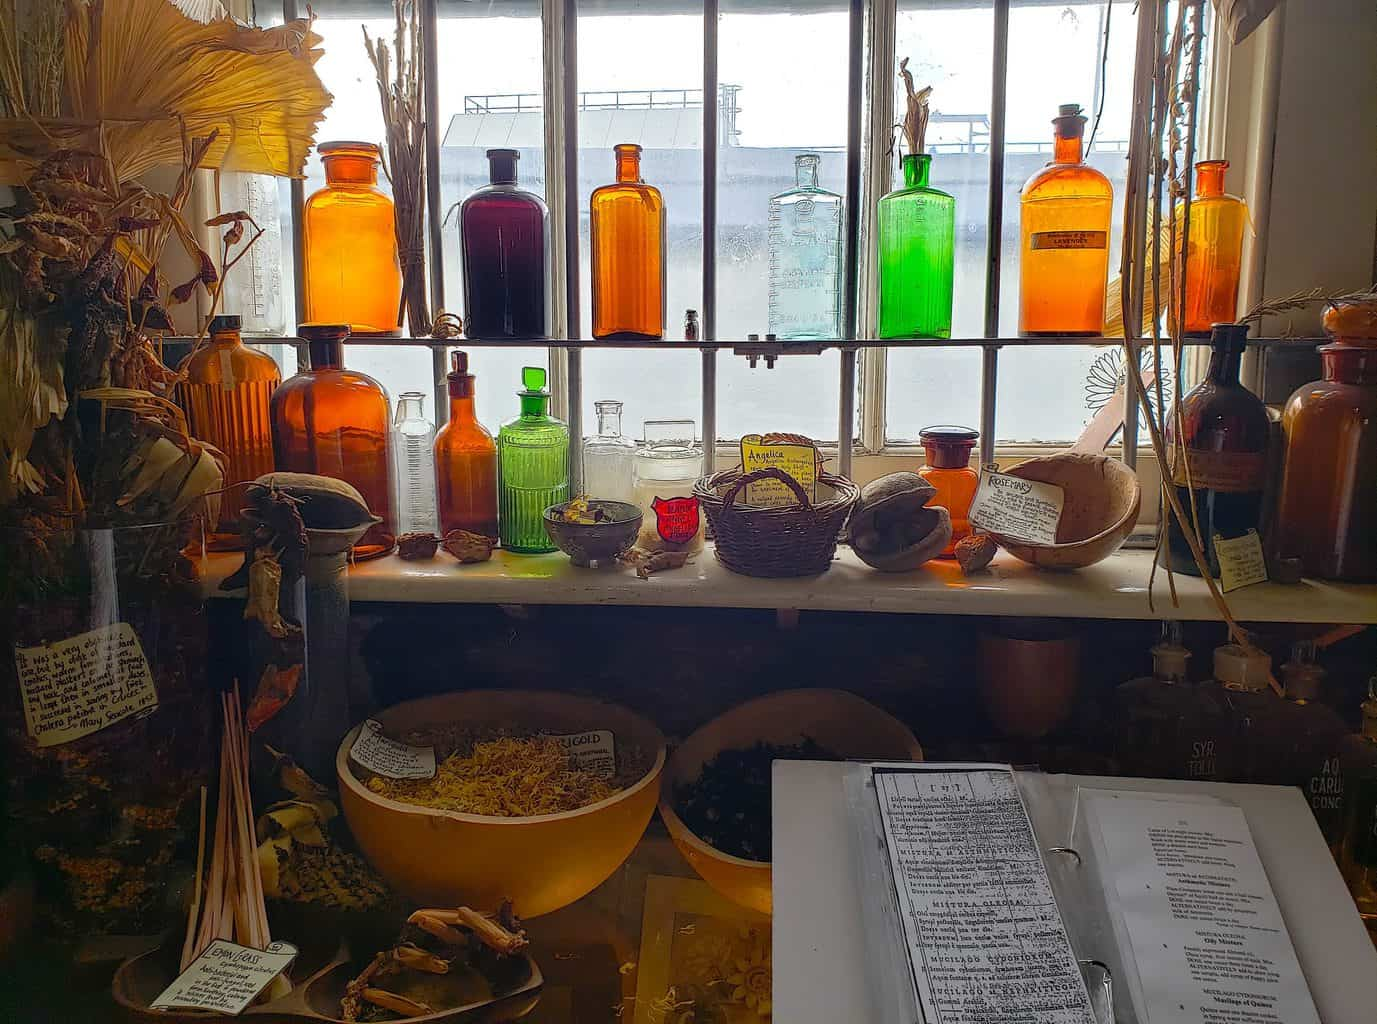 Some of the relics from the apothecary shop that you'll find inside London's Old Operating Theatre.